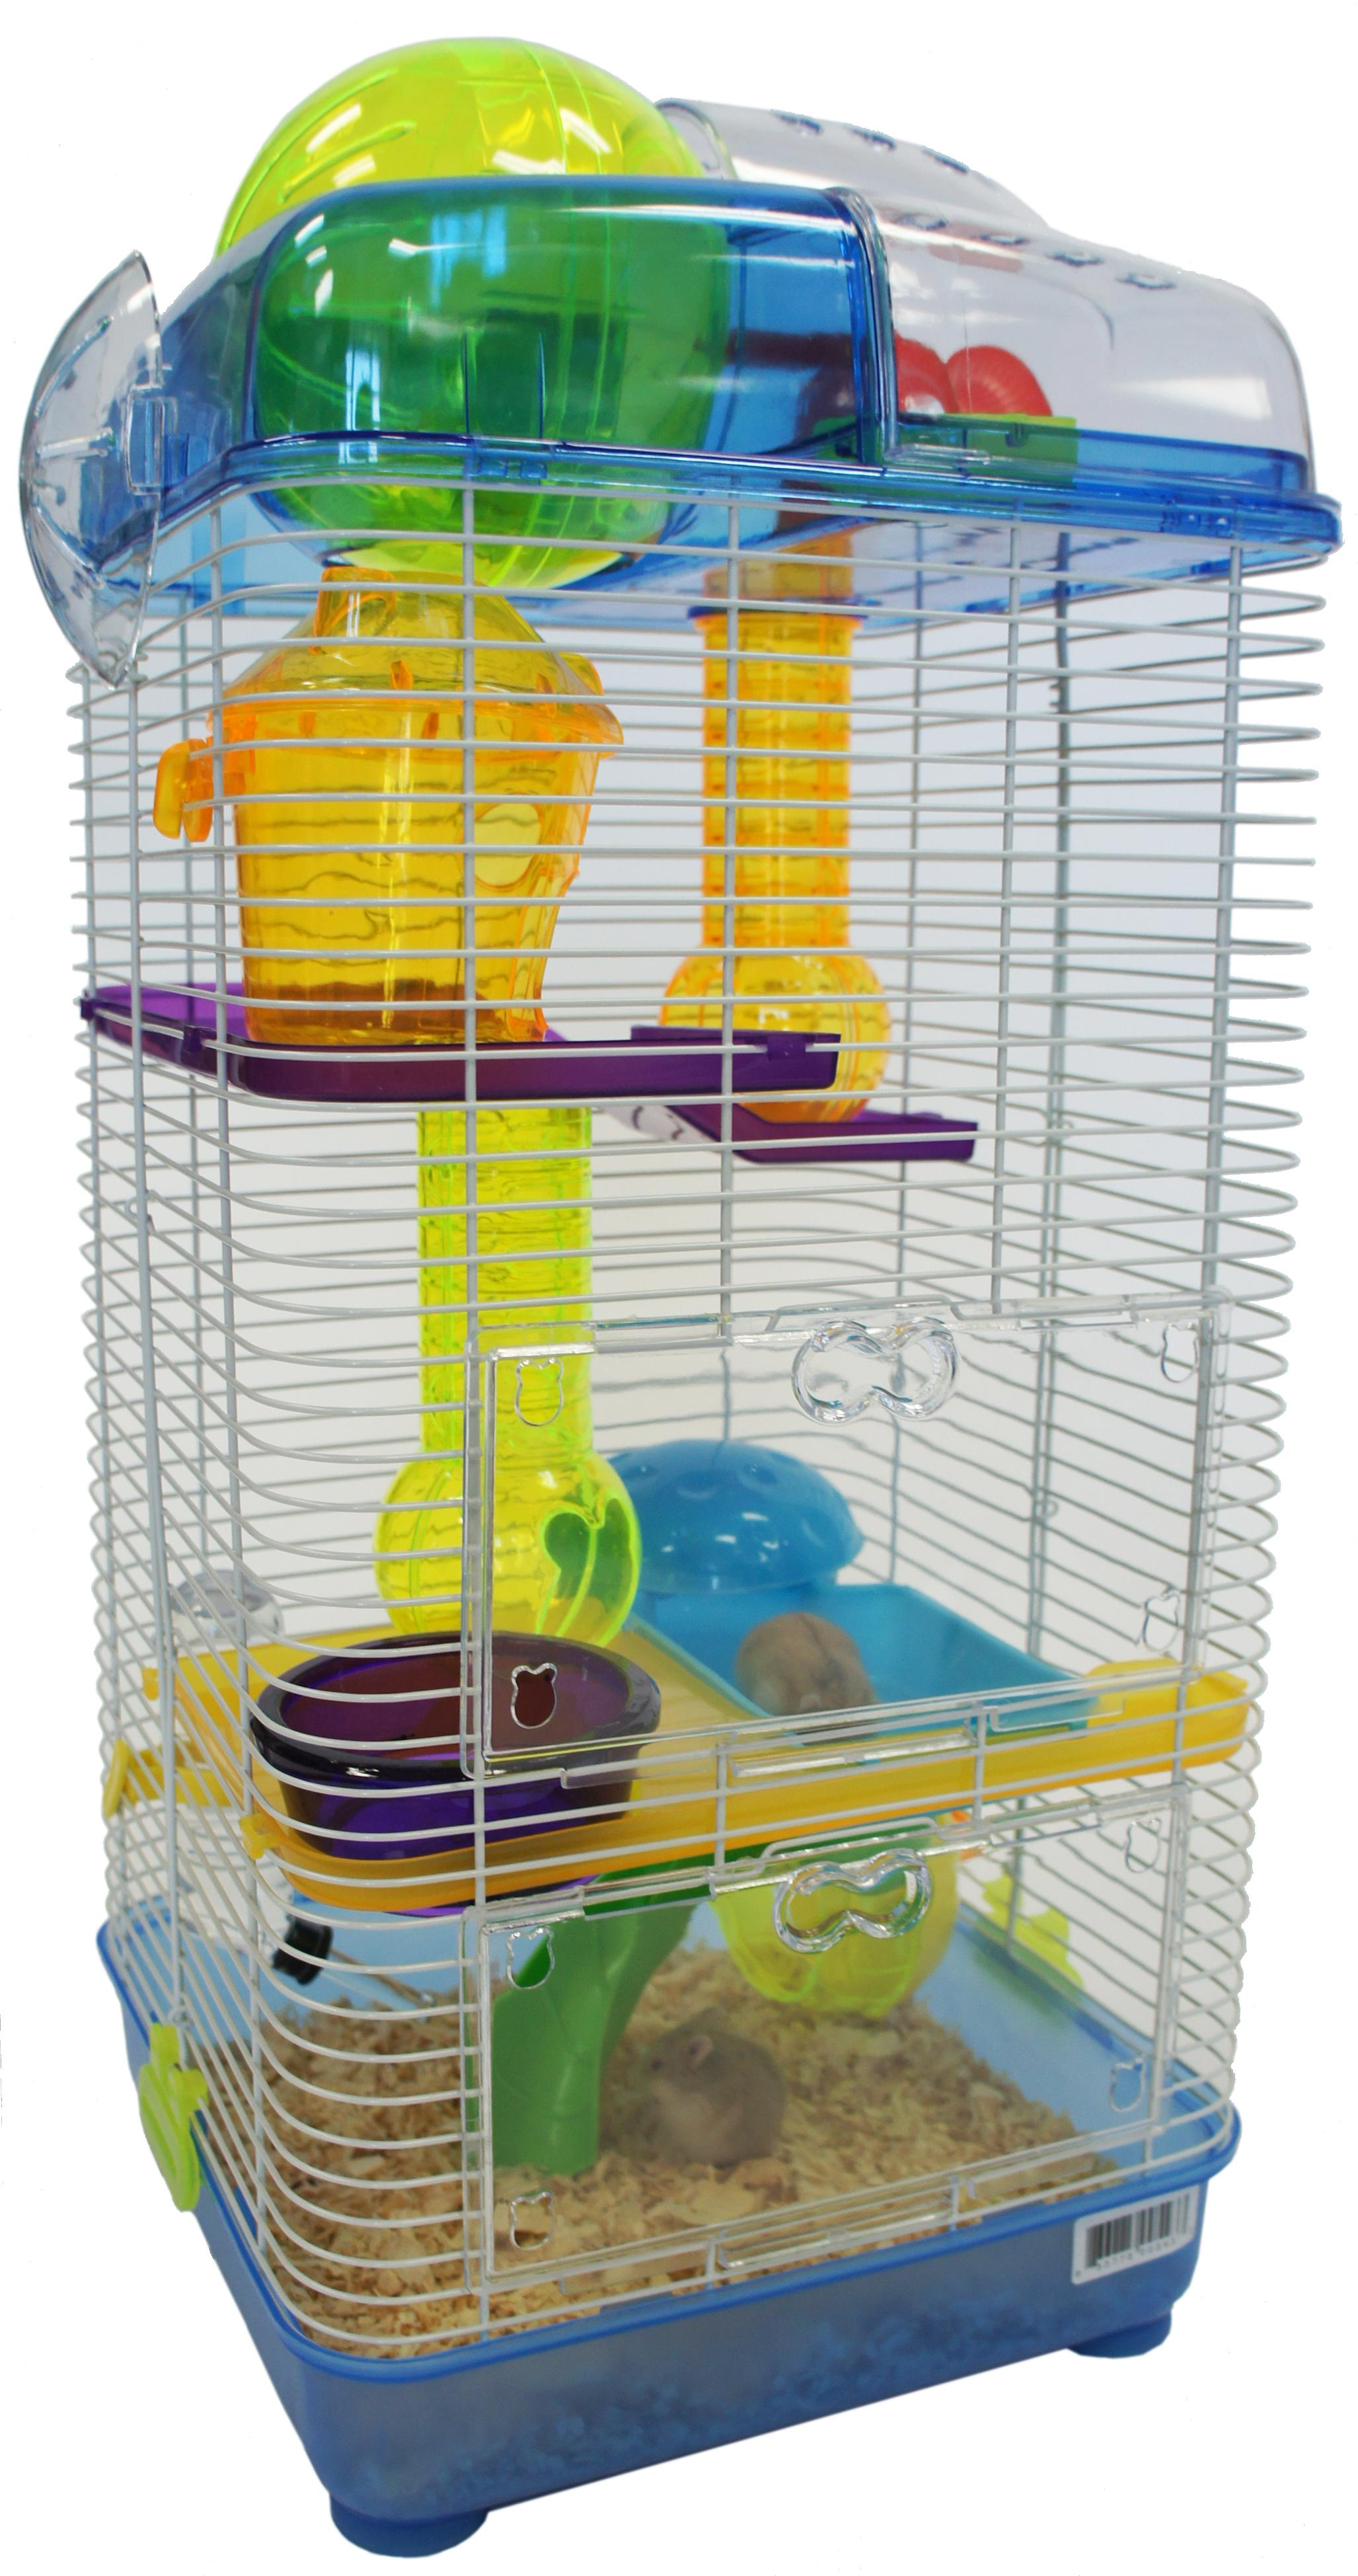 Amazon.com : YML 3-Level Clear Plastic Dwarf Hamster Mice Cage with Ball on Top, Blue : Pet